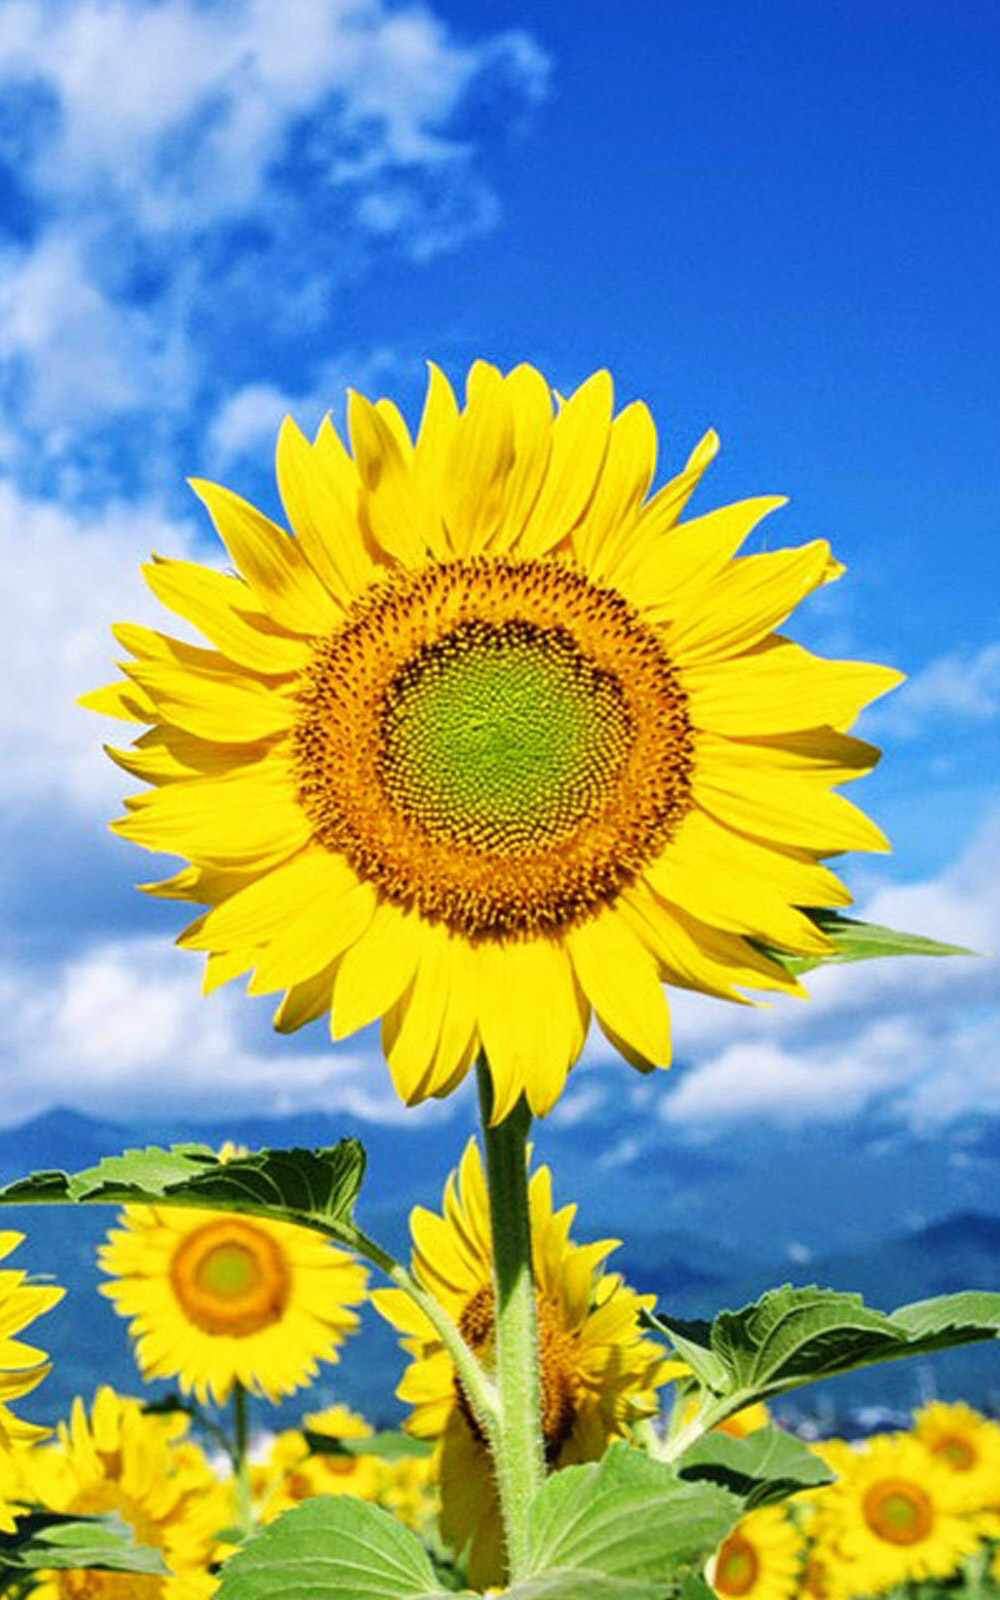 Sunflower Wallpaper With Quote Download Sunflower Mobile Wallpaper Gallery